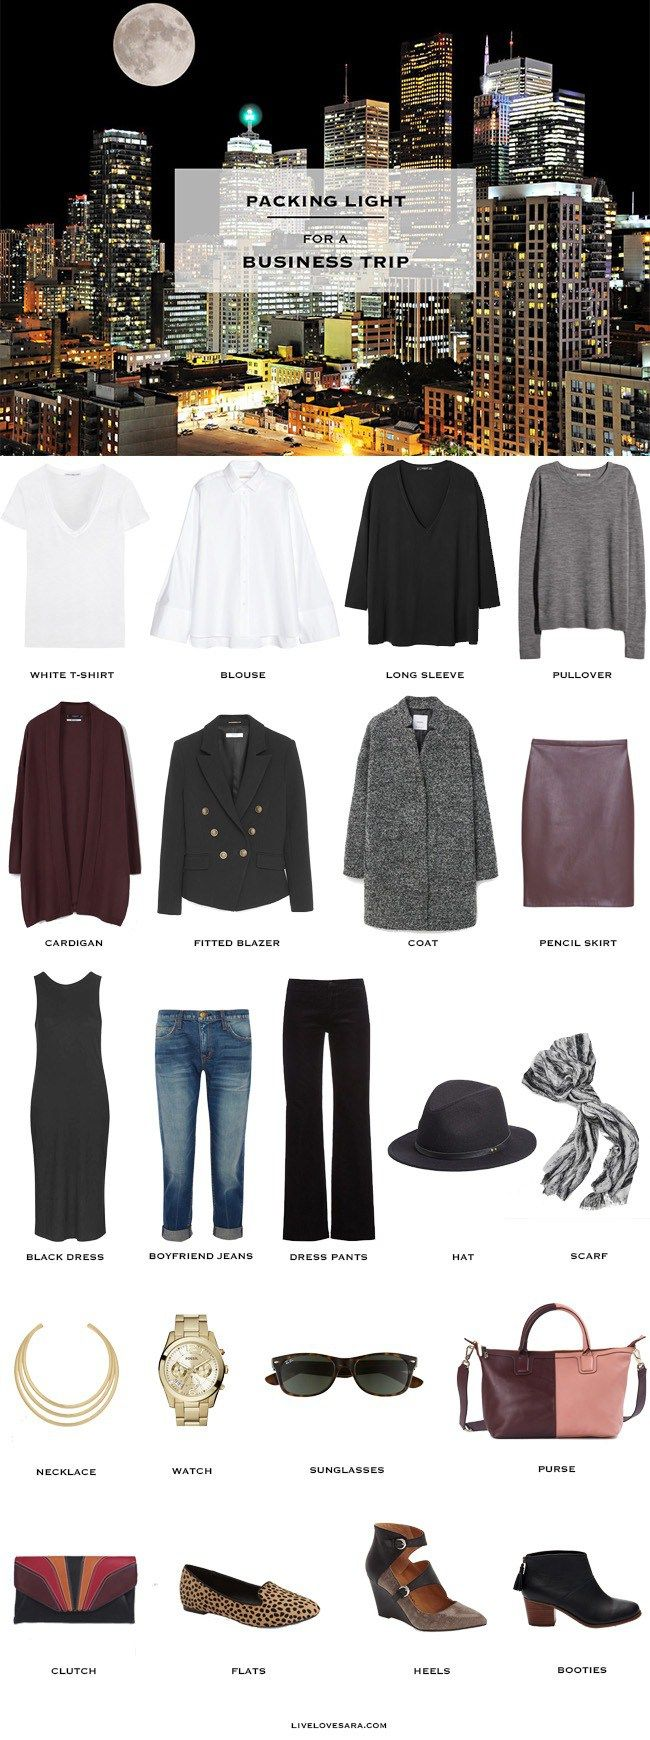 Great blog for what clothing to pack for various destinations